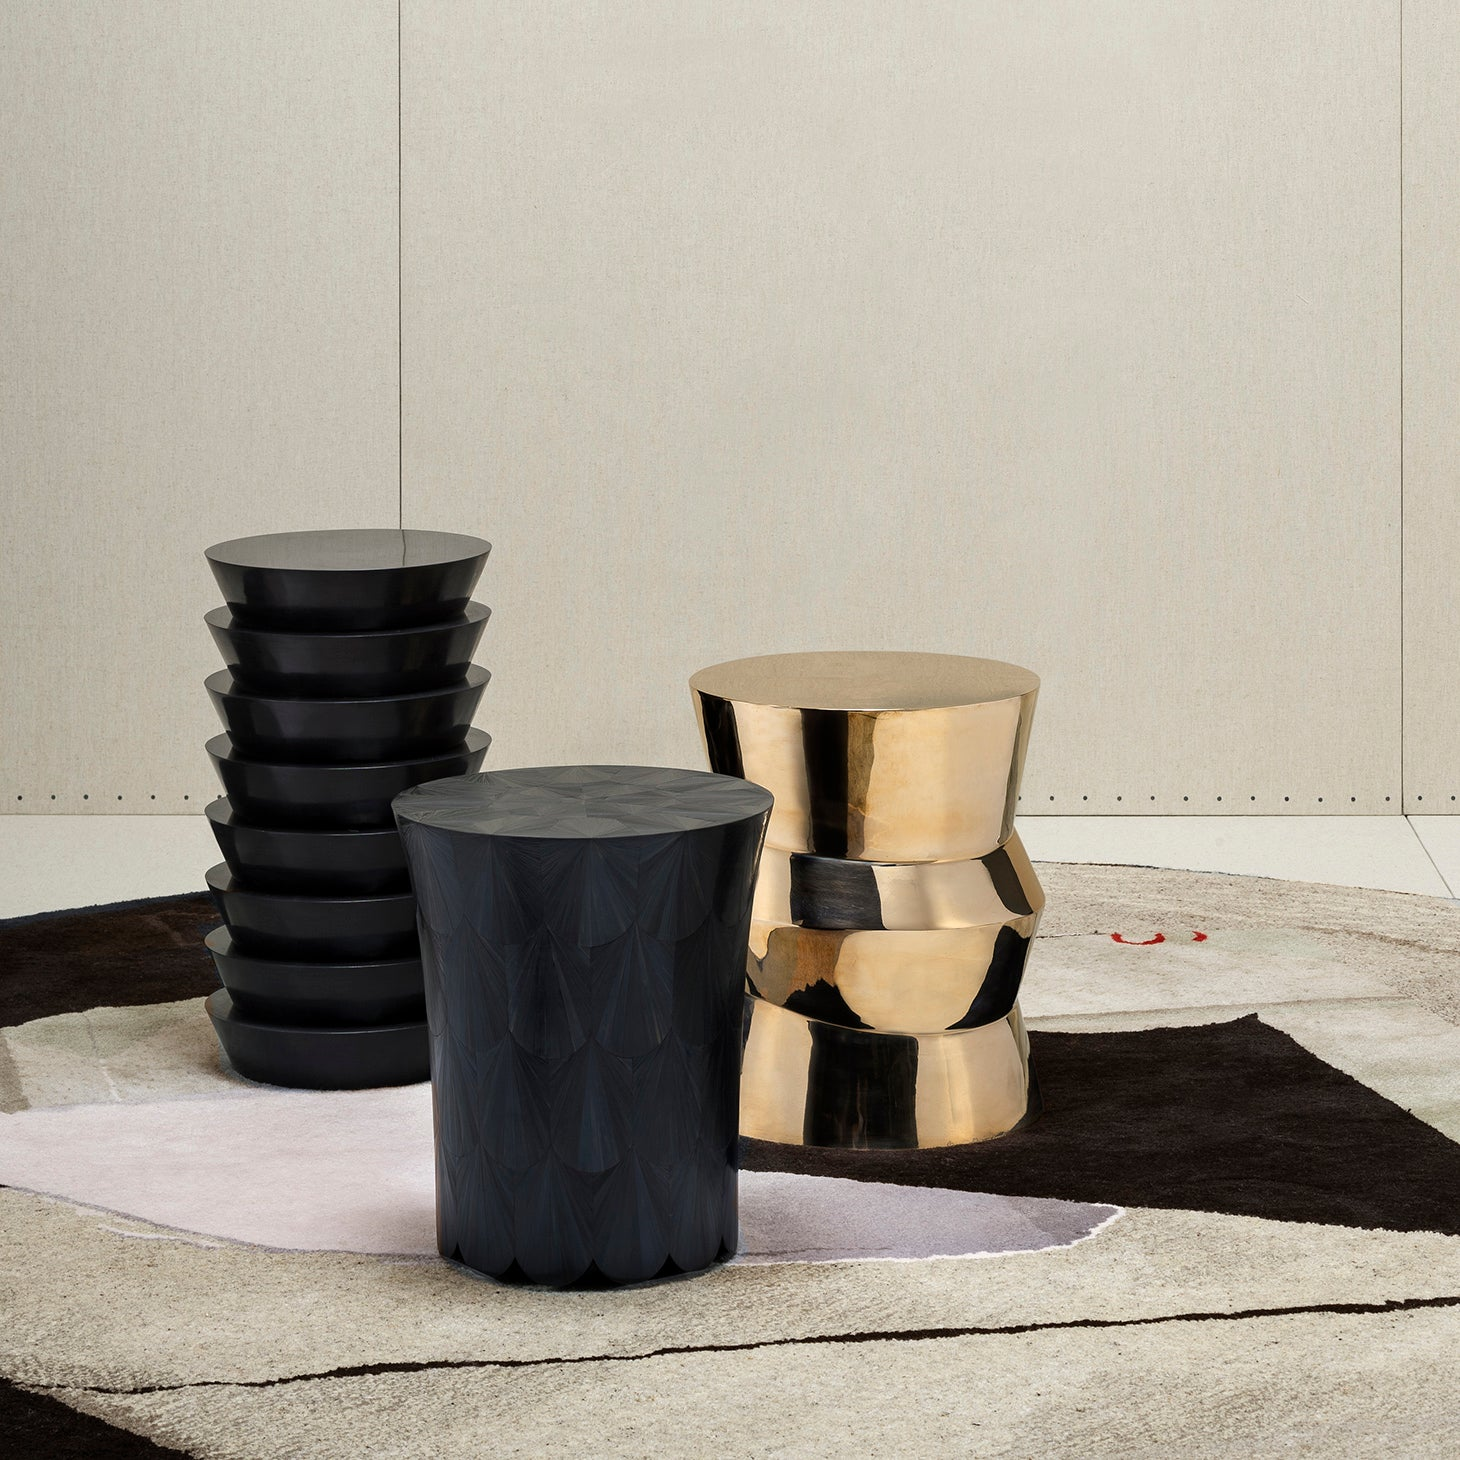 DUGO Side Table Tables Bruno Moinard Designer Furniture Sku: 773-230-10000